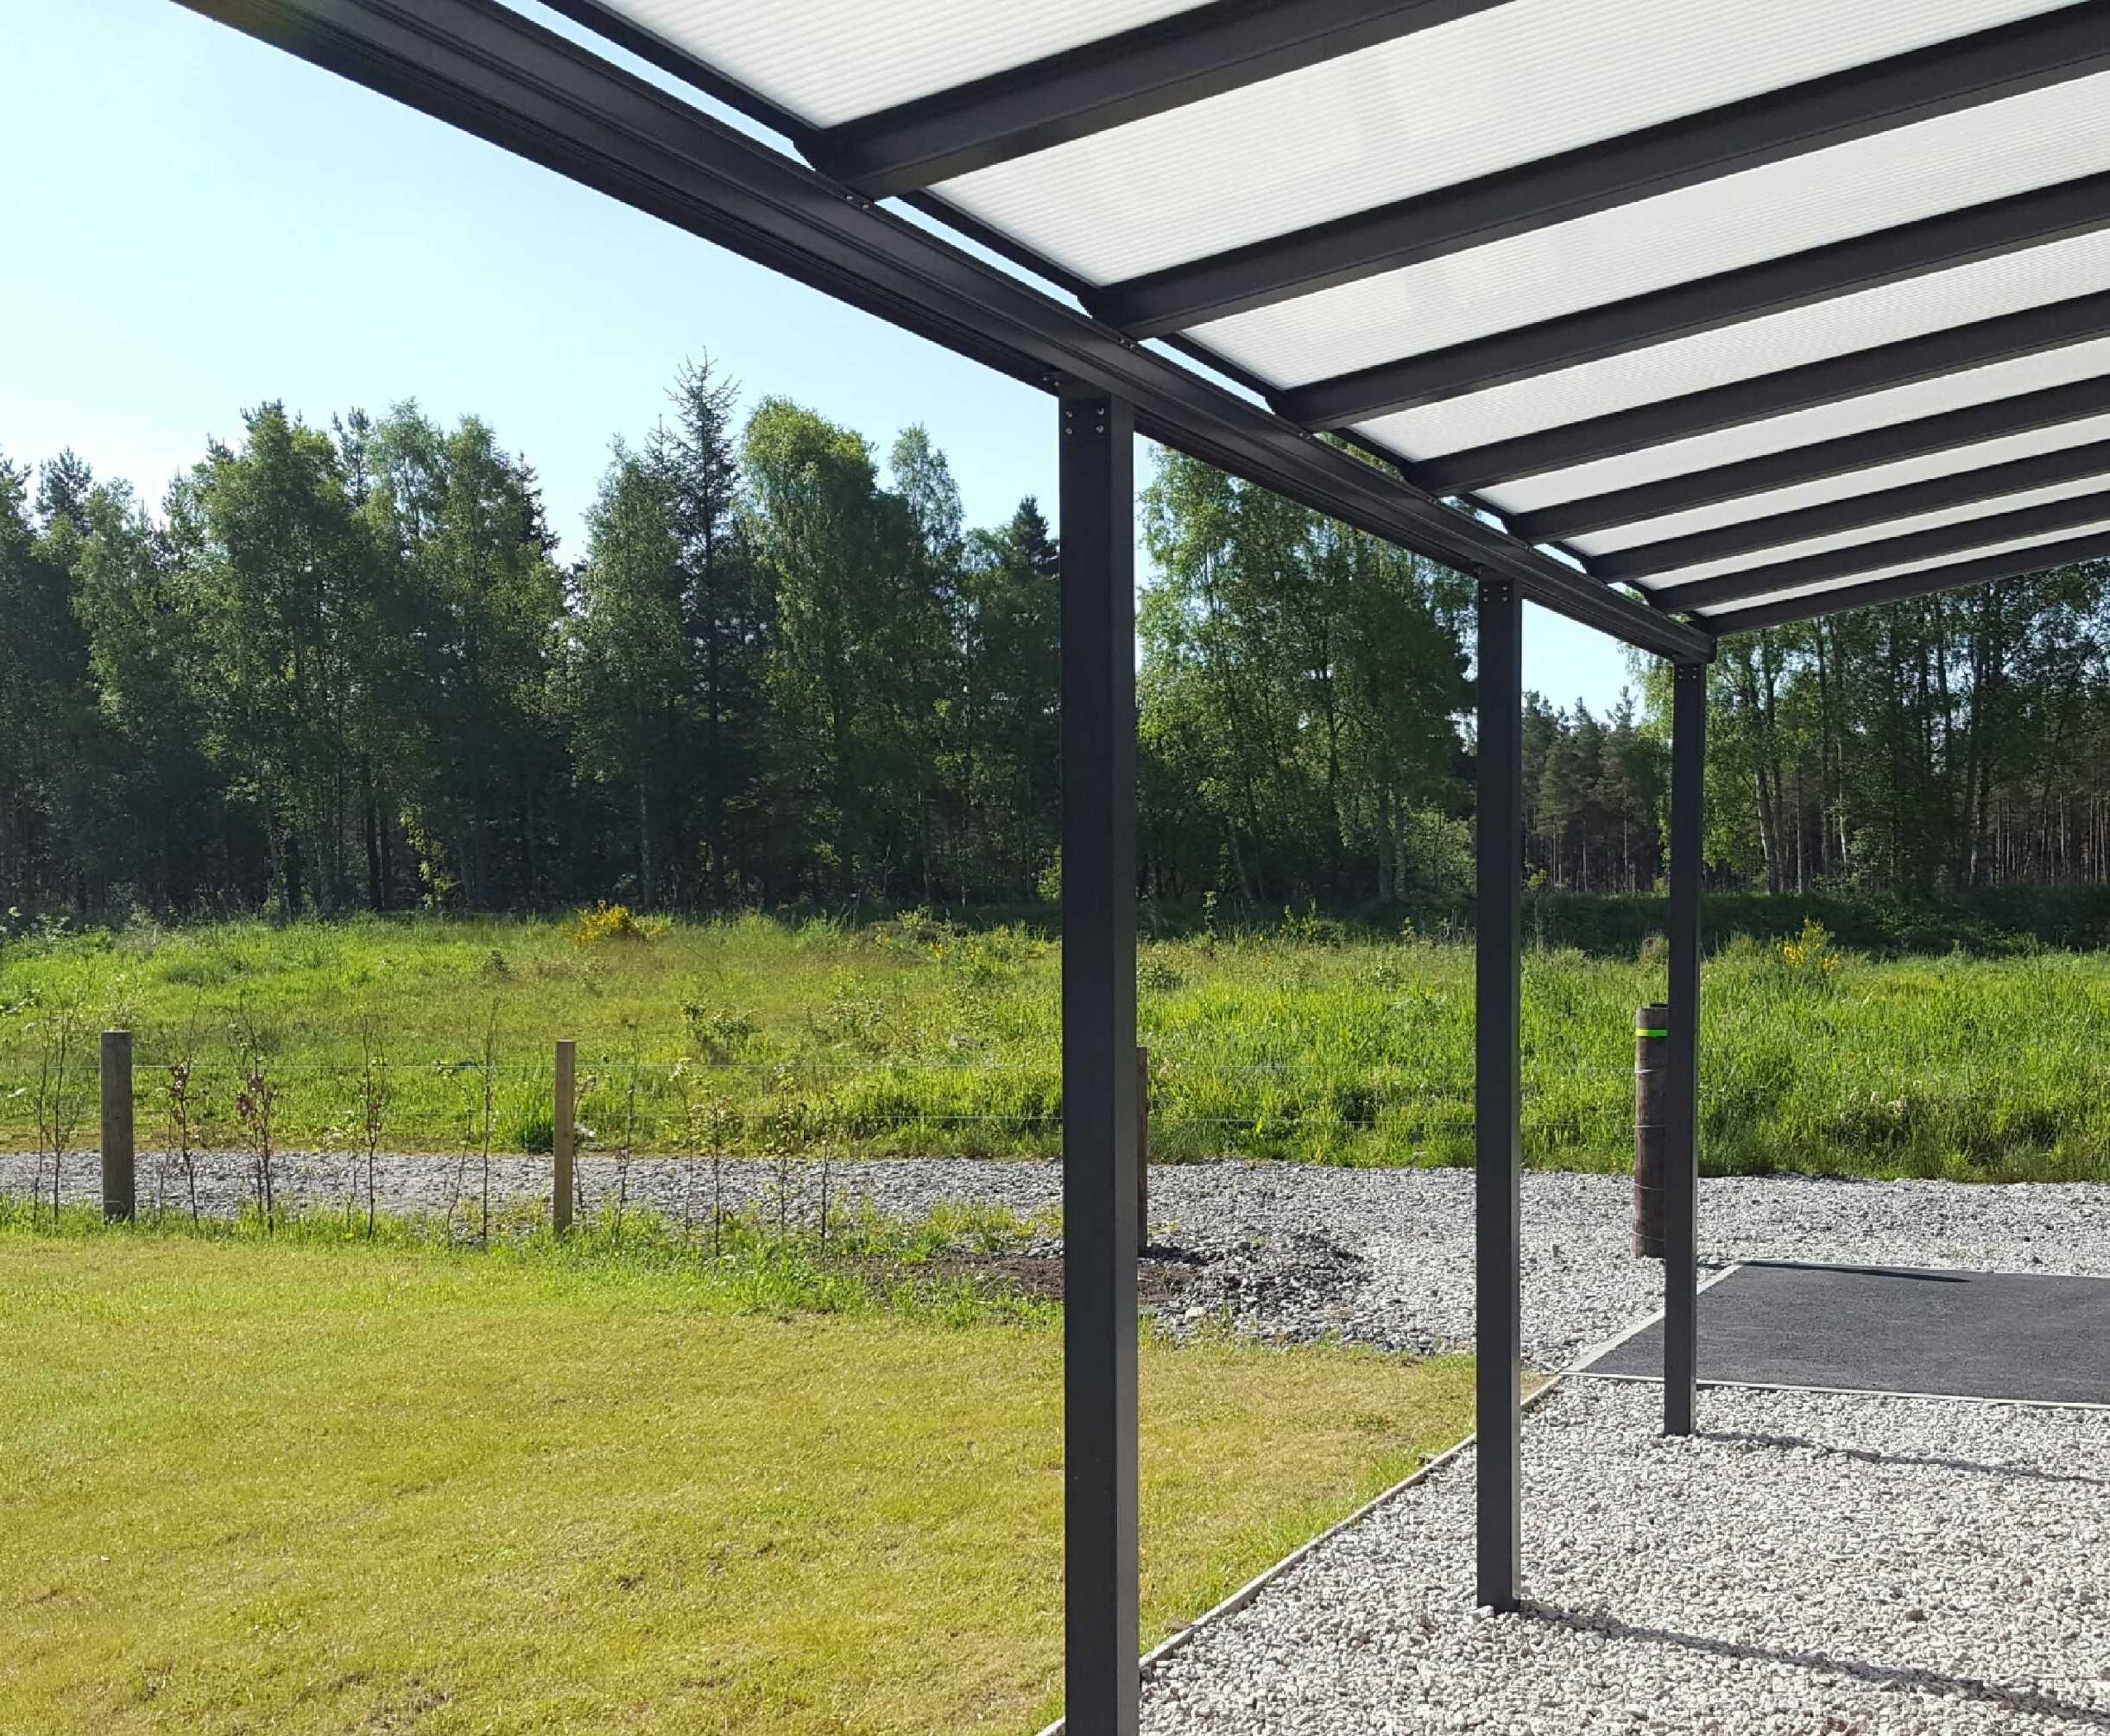 Omega Smart Lean-To Canopy, Anthracite Grey, 16mm Polycarbonate Glazing - 9.9m (W) x 3.5m (P), (5) Supporting Posts